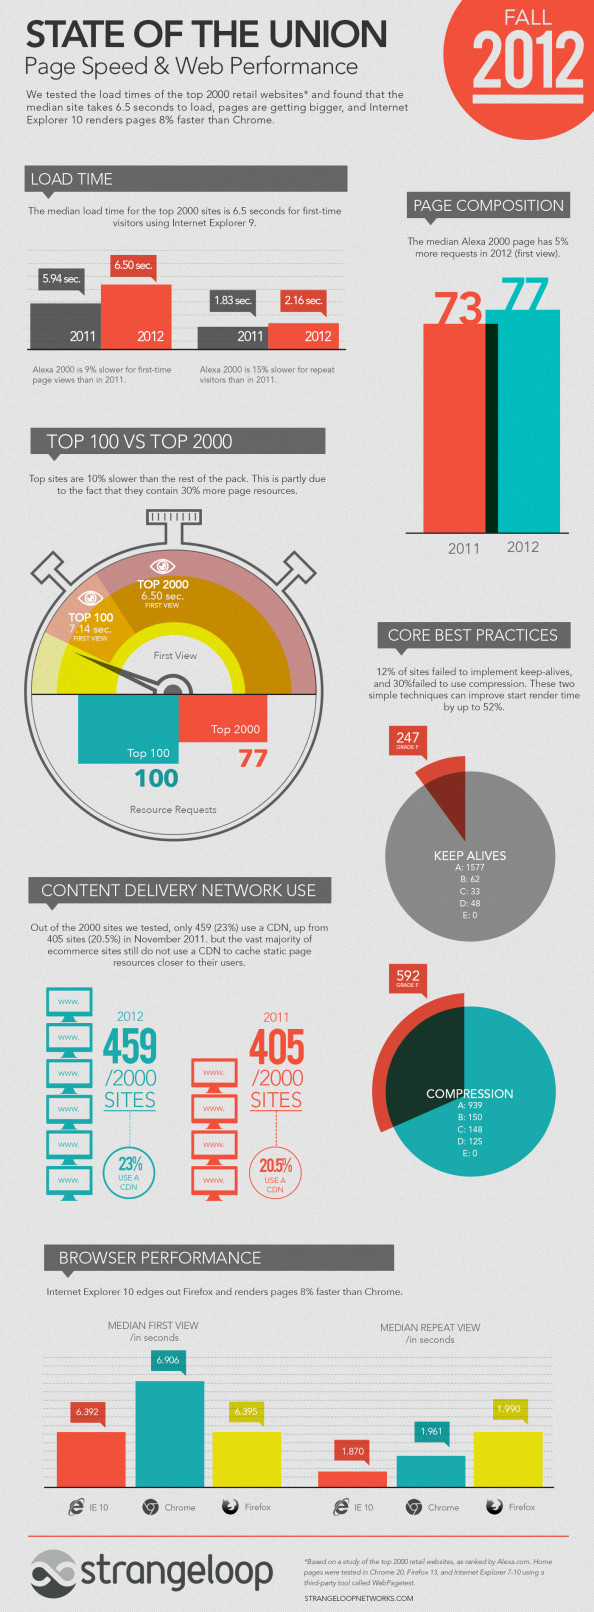 Ecommerce Page Speed: Fall 2012 State of the Union Infographic